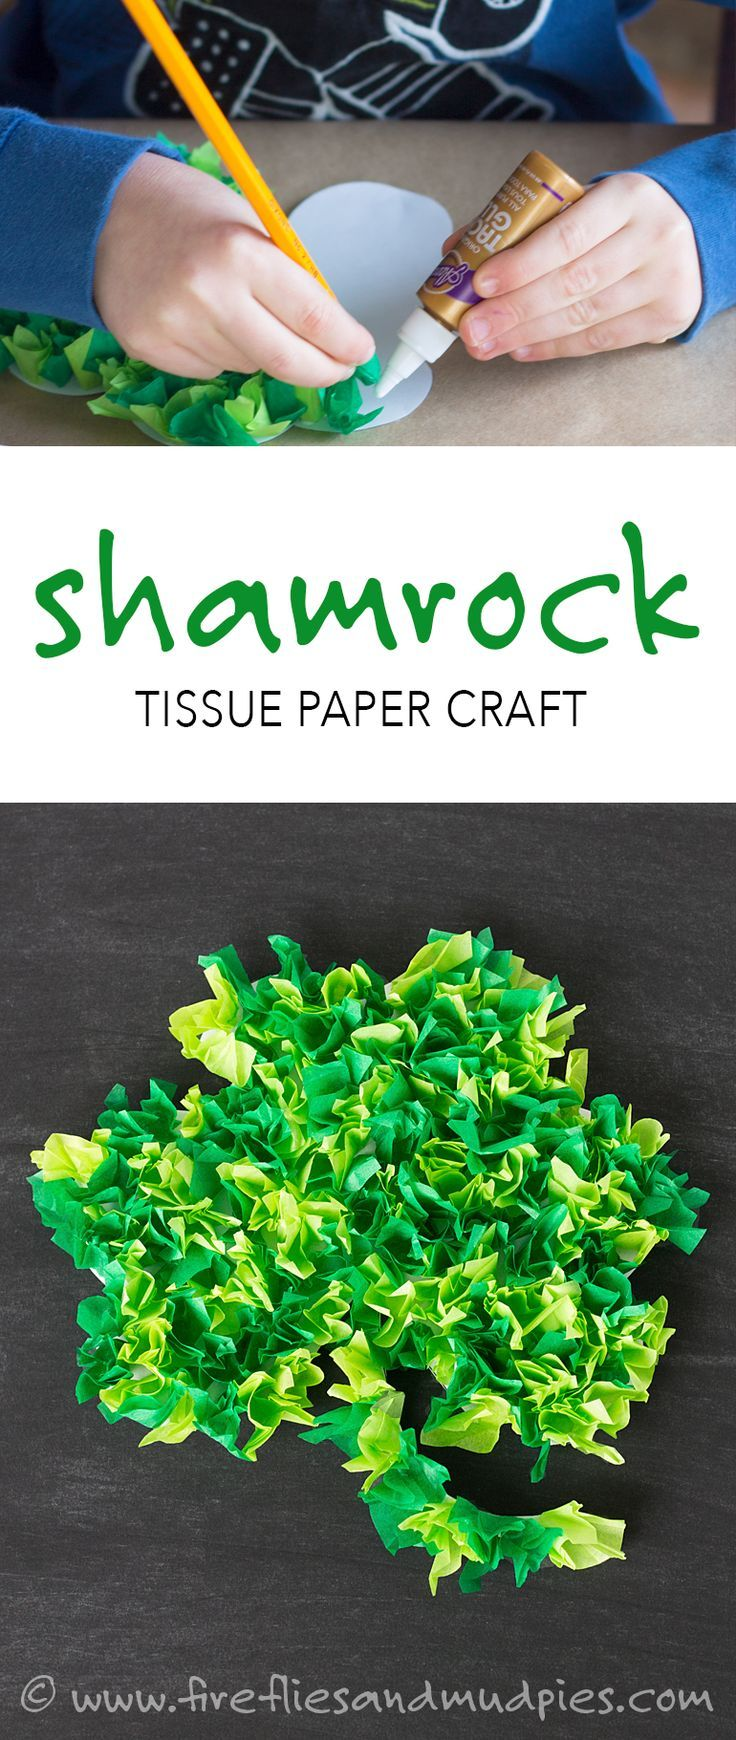 St patricks day preschool crafts - Fun St Patrick S Day Craft For Kids Shamrock Tissue Paper Craft With A